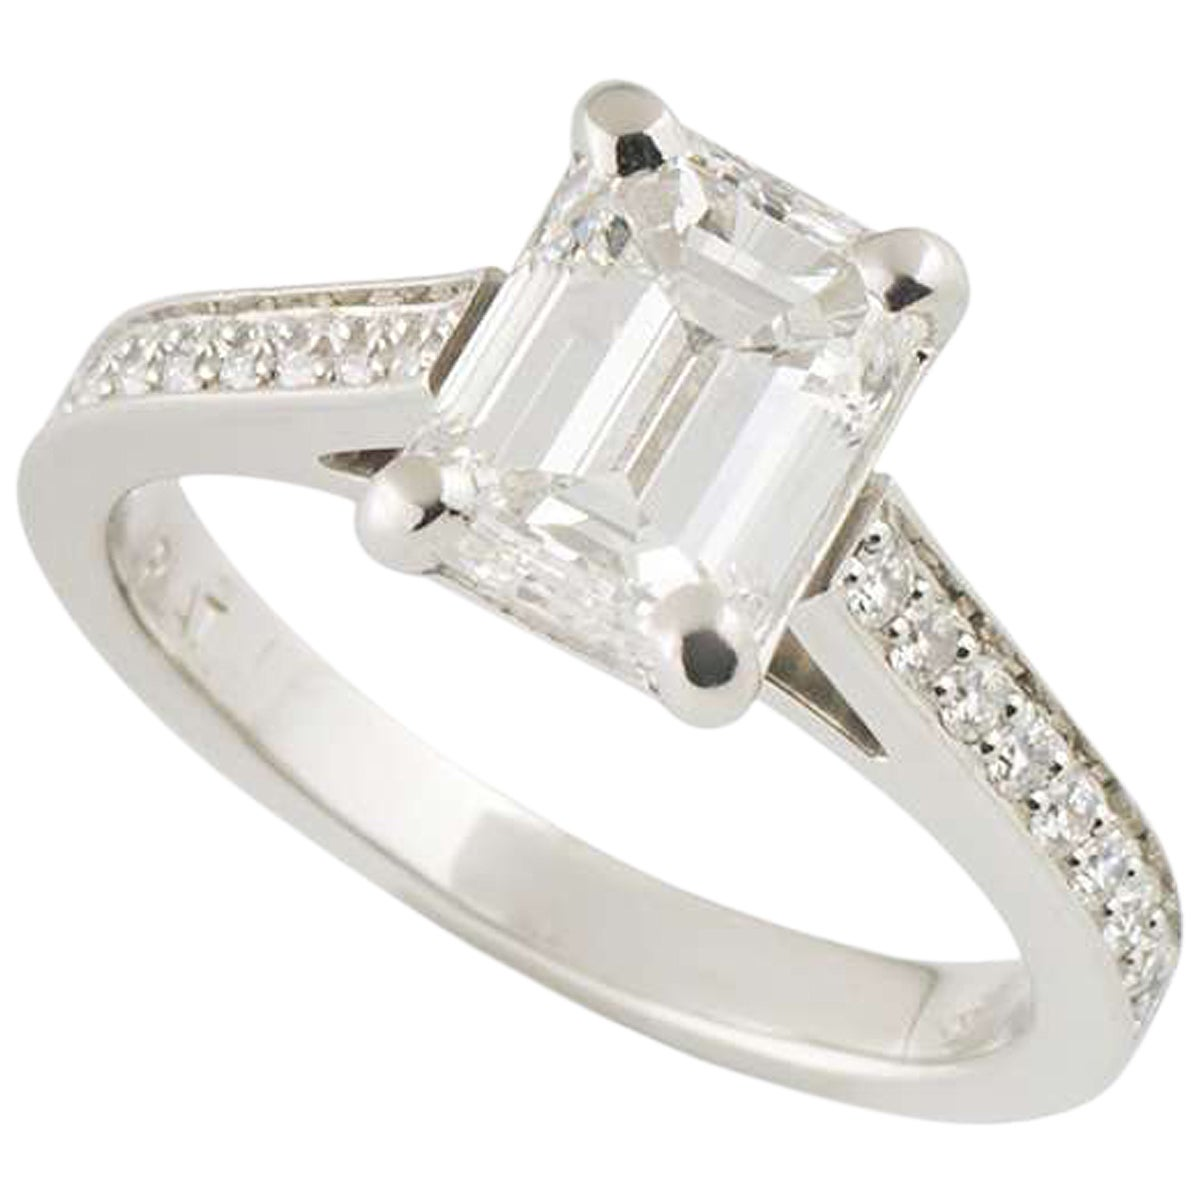 GIA Certified Emerald Cut Diamond Solitaire Engagement Ring 1.51 Carat Platinum